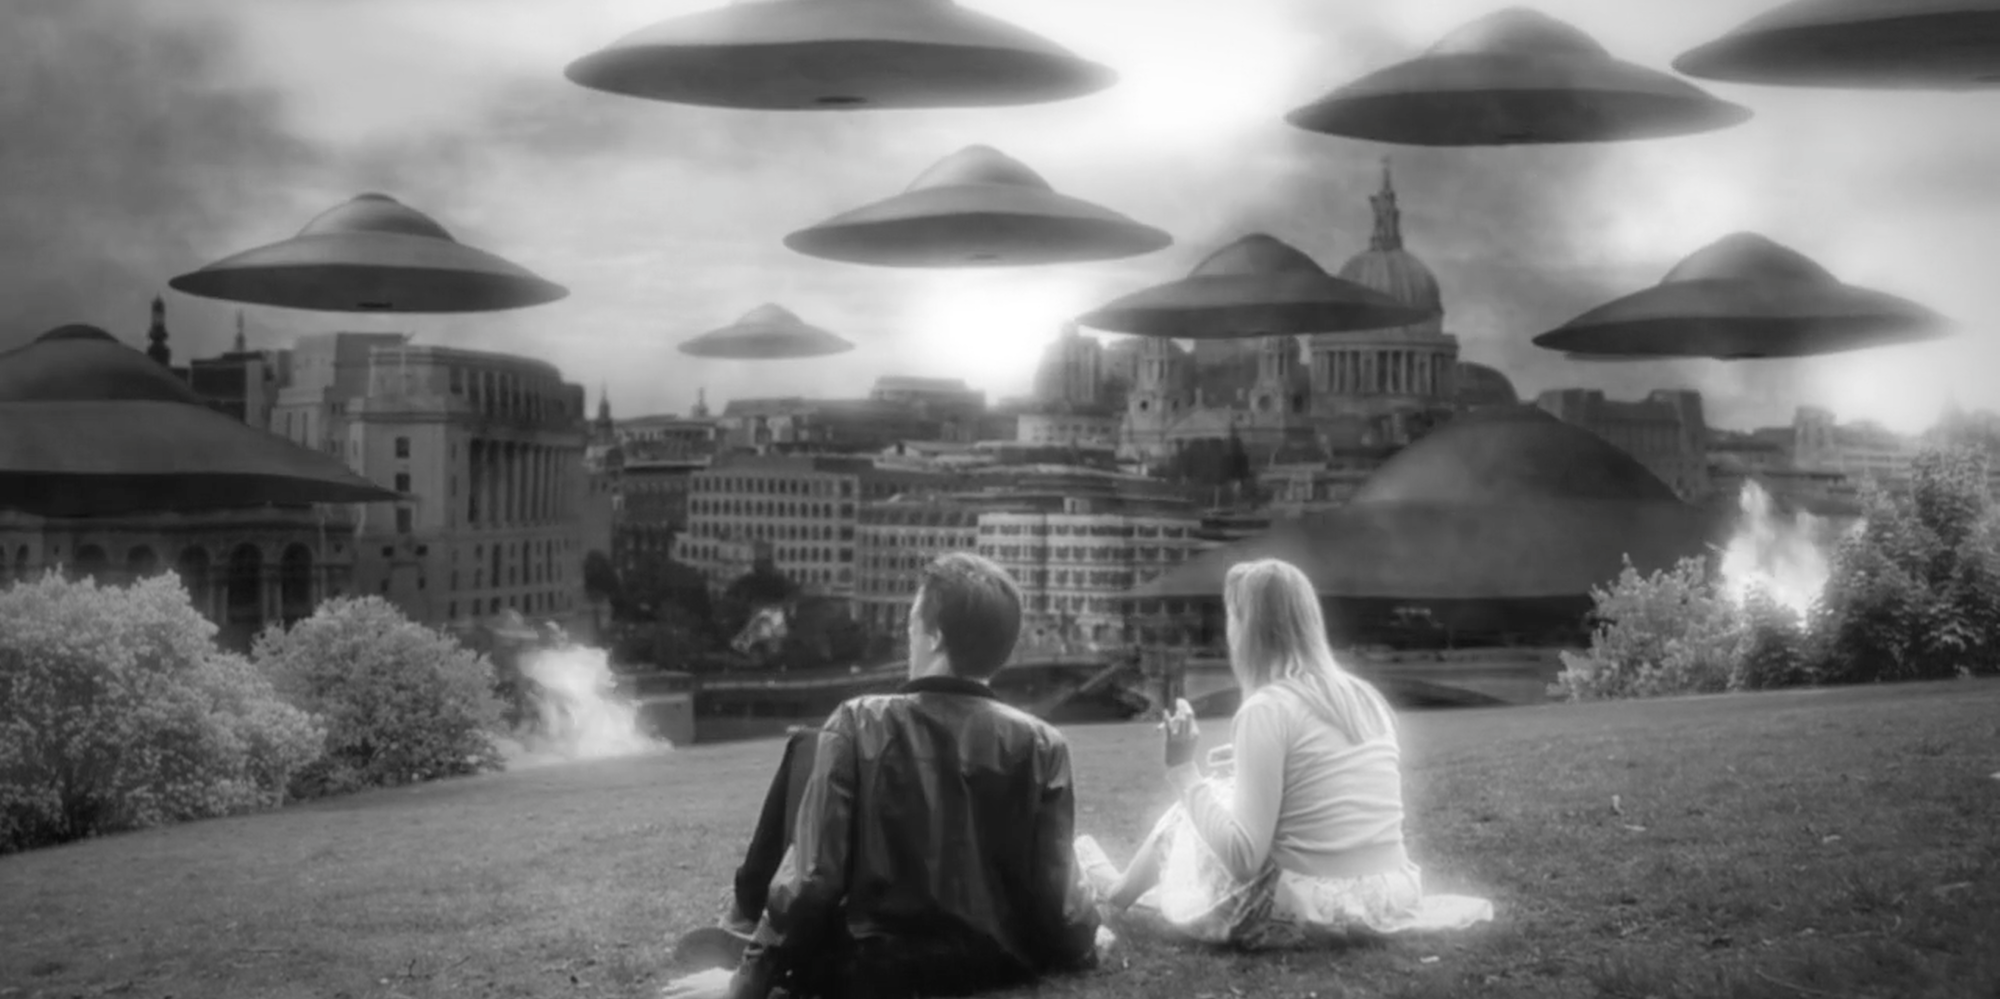 Scientists Need to Take Back the Word 'Alien' Before We Find Extraterrestrials